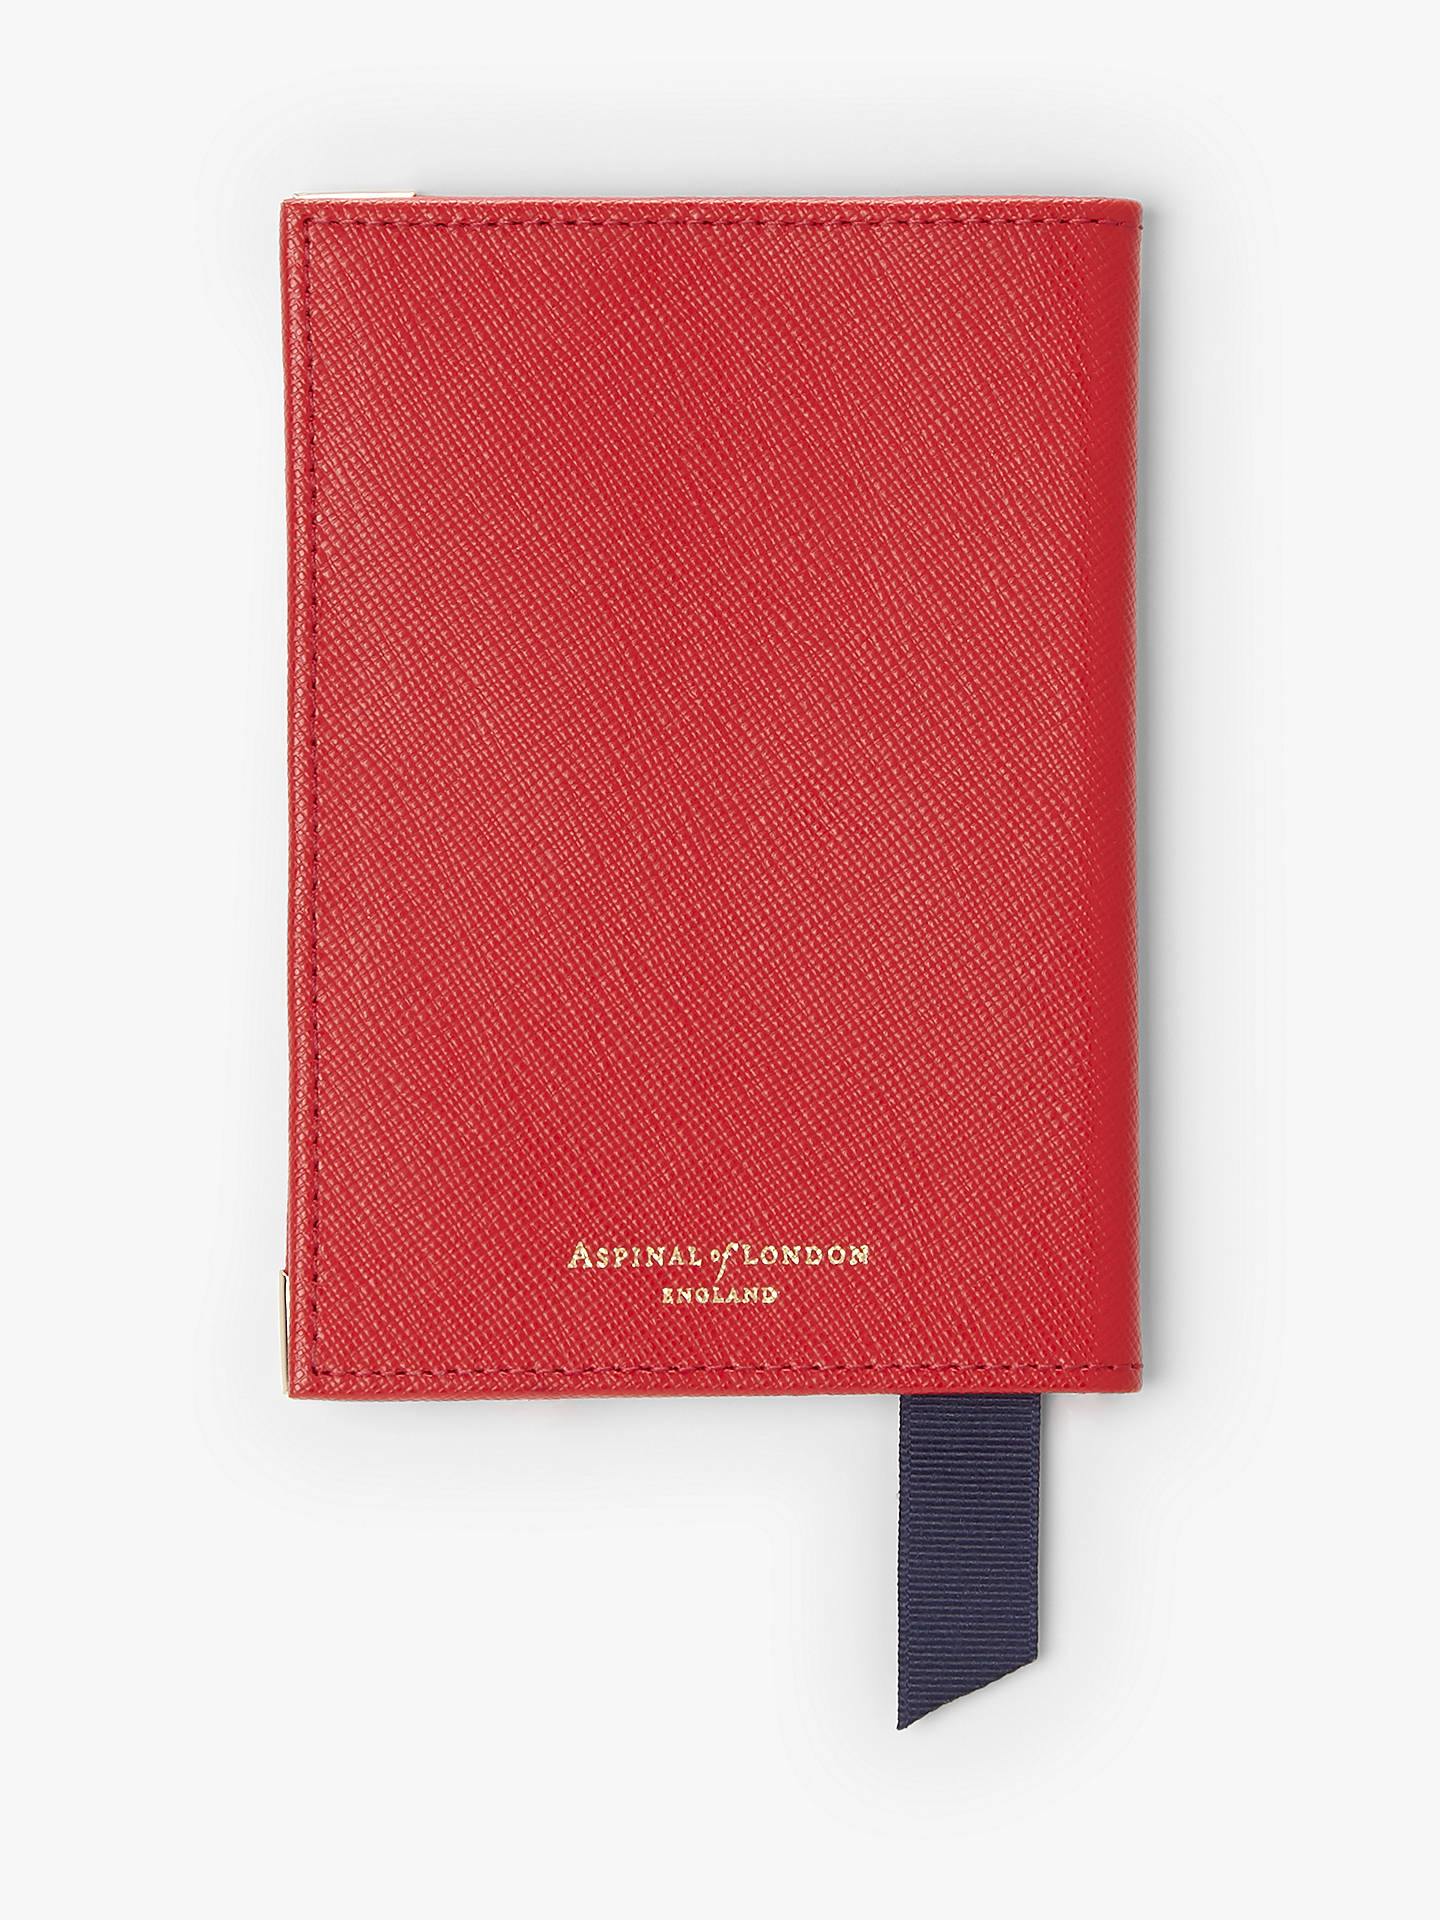 603eb12b38c1 Aspinal of London Leather Passport Cover, Scarlet